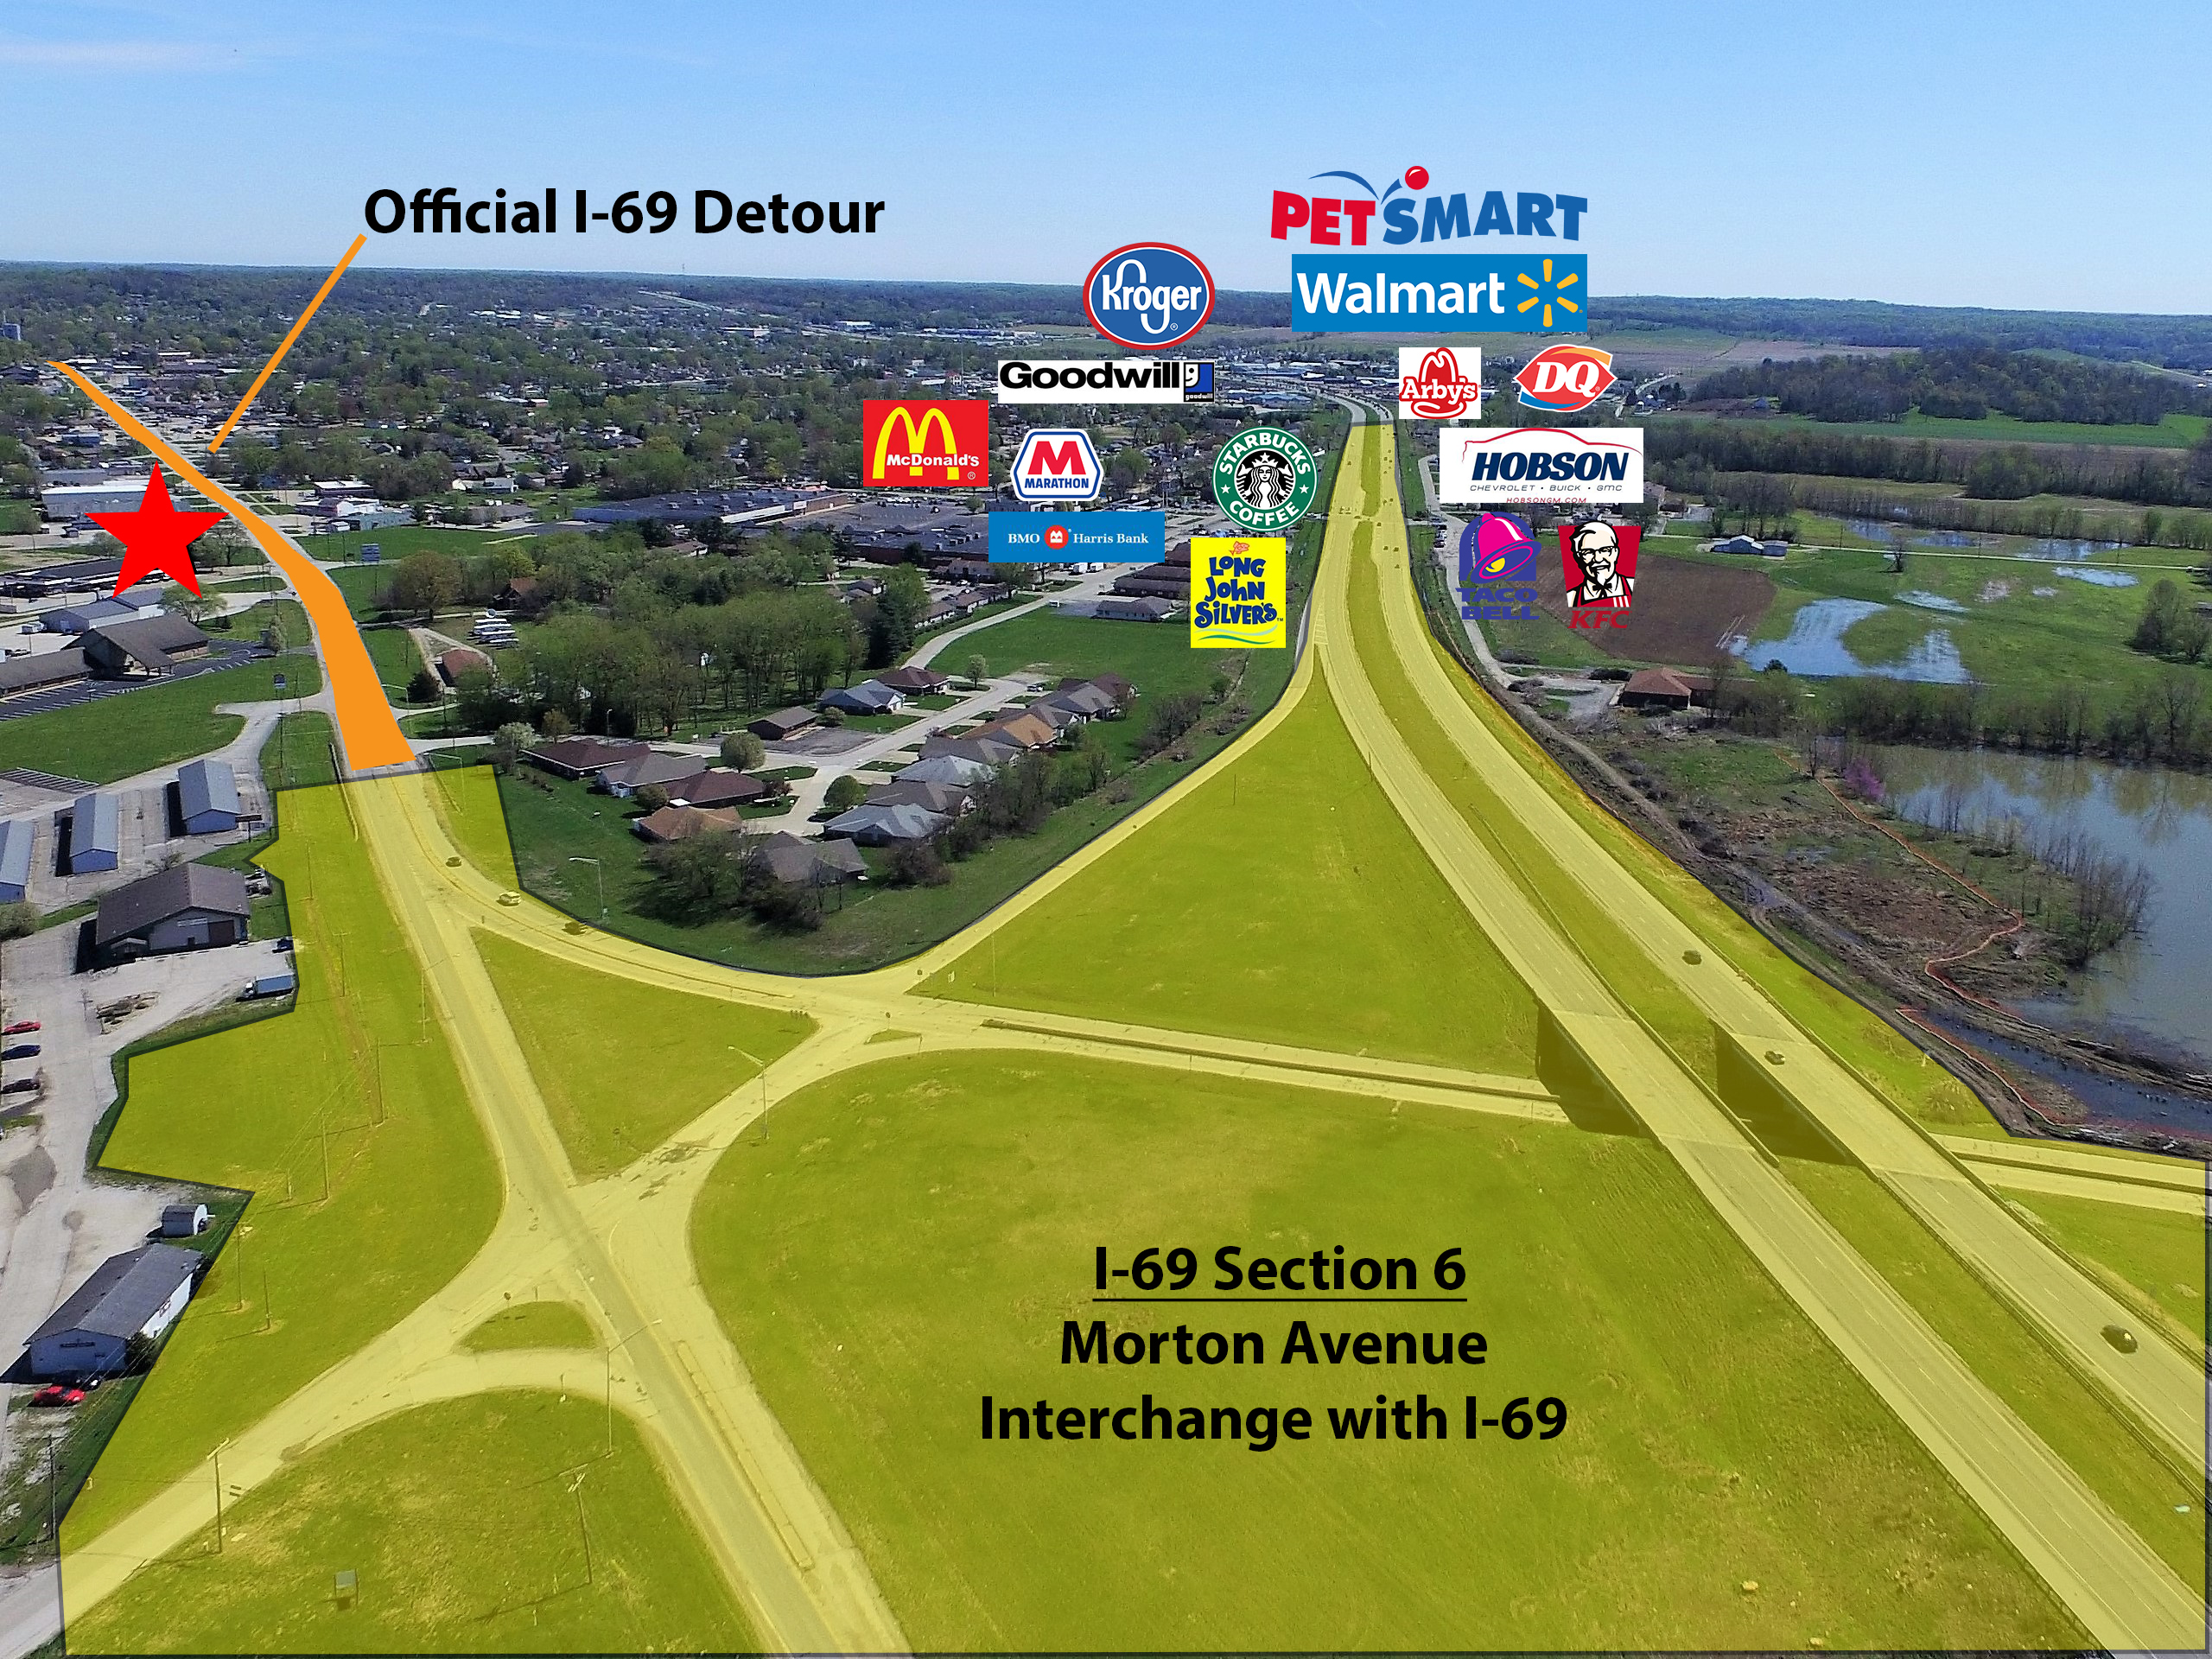 Retail Properties On I-69 Detour & Ramp In Martinsville, IN